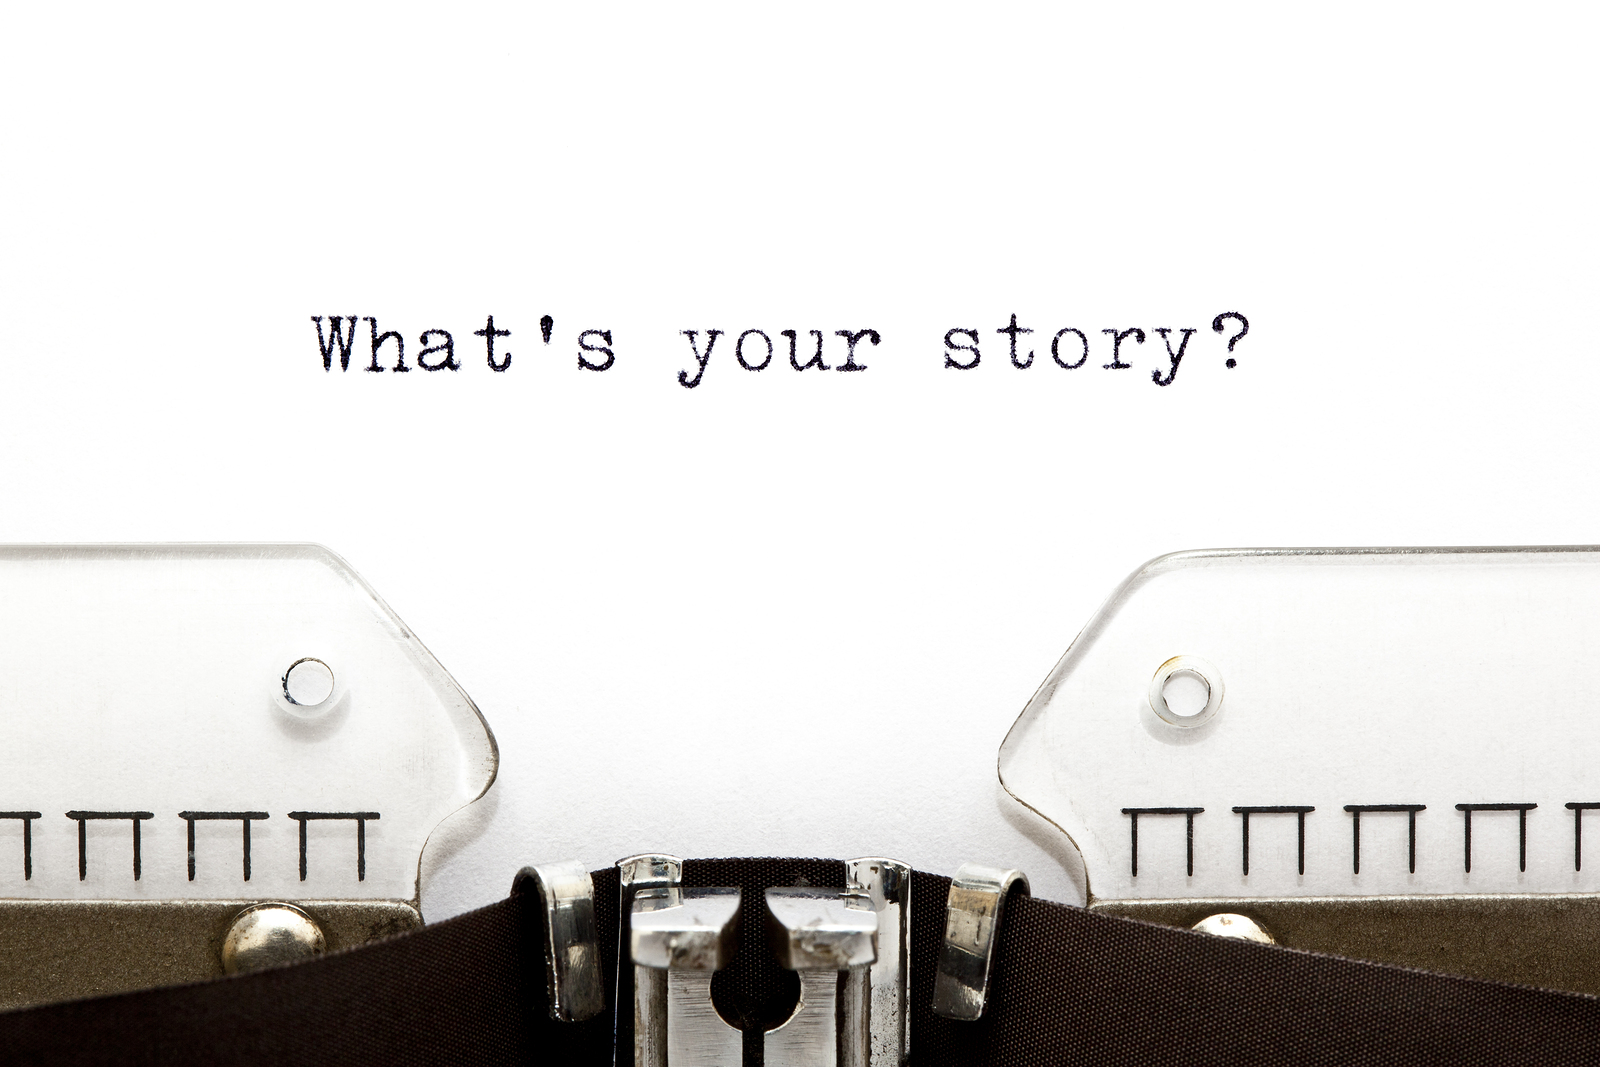 Your life experiences have made you into the unique person you are. Tell your story. -